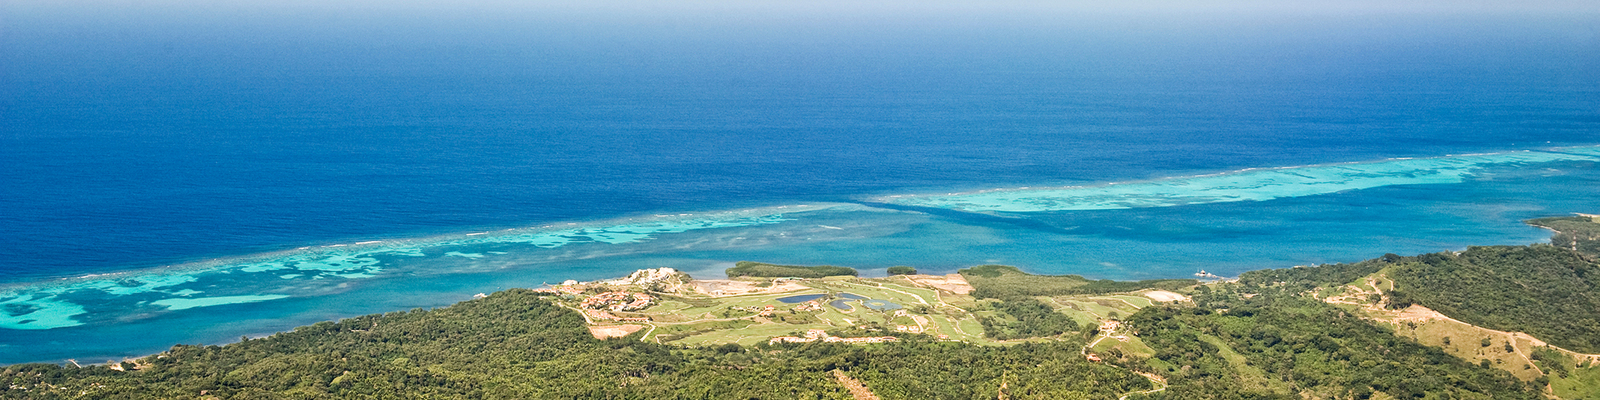 Aerial view of a coastline in Roatan, Bay Islands, Honduras. The ocean is a deep blue. At the barrier reef, the water is turquoise.